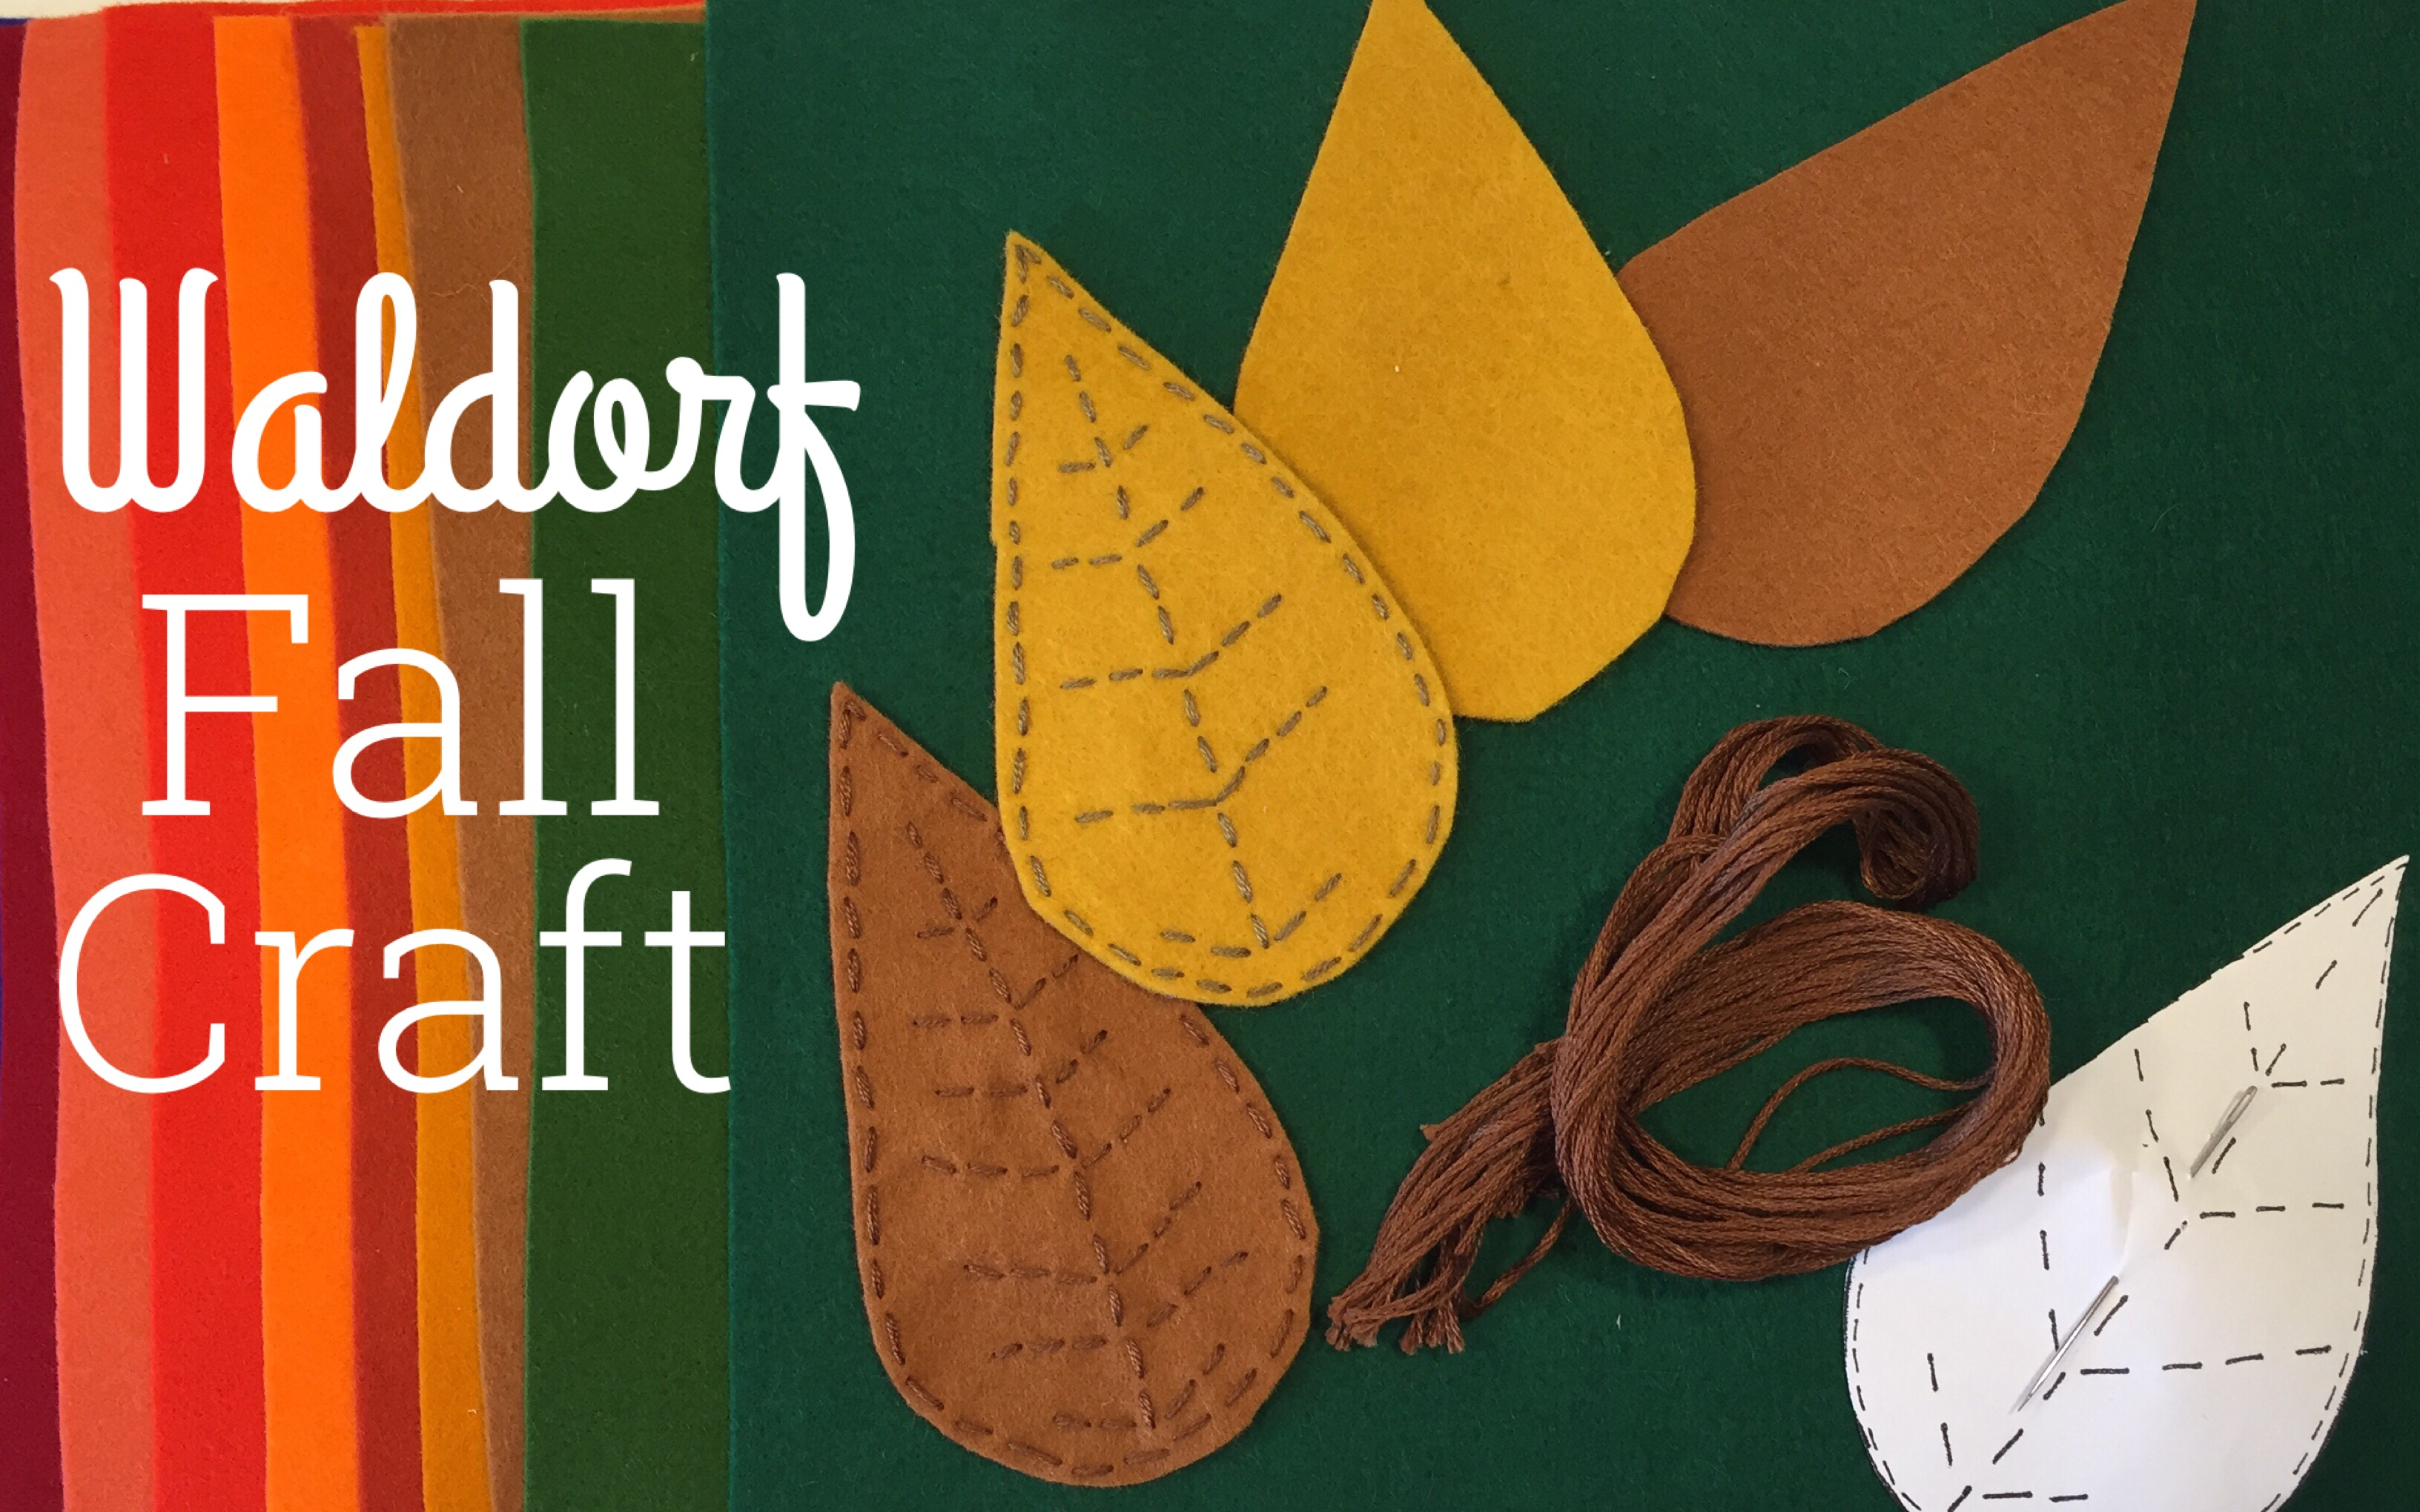 WALDORF FALL CRAFT